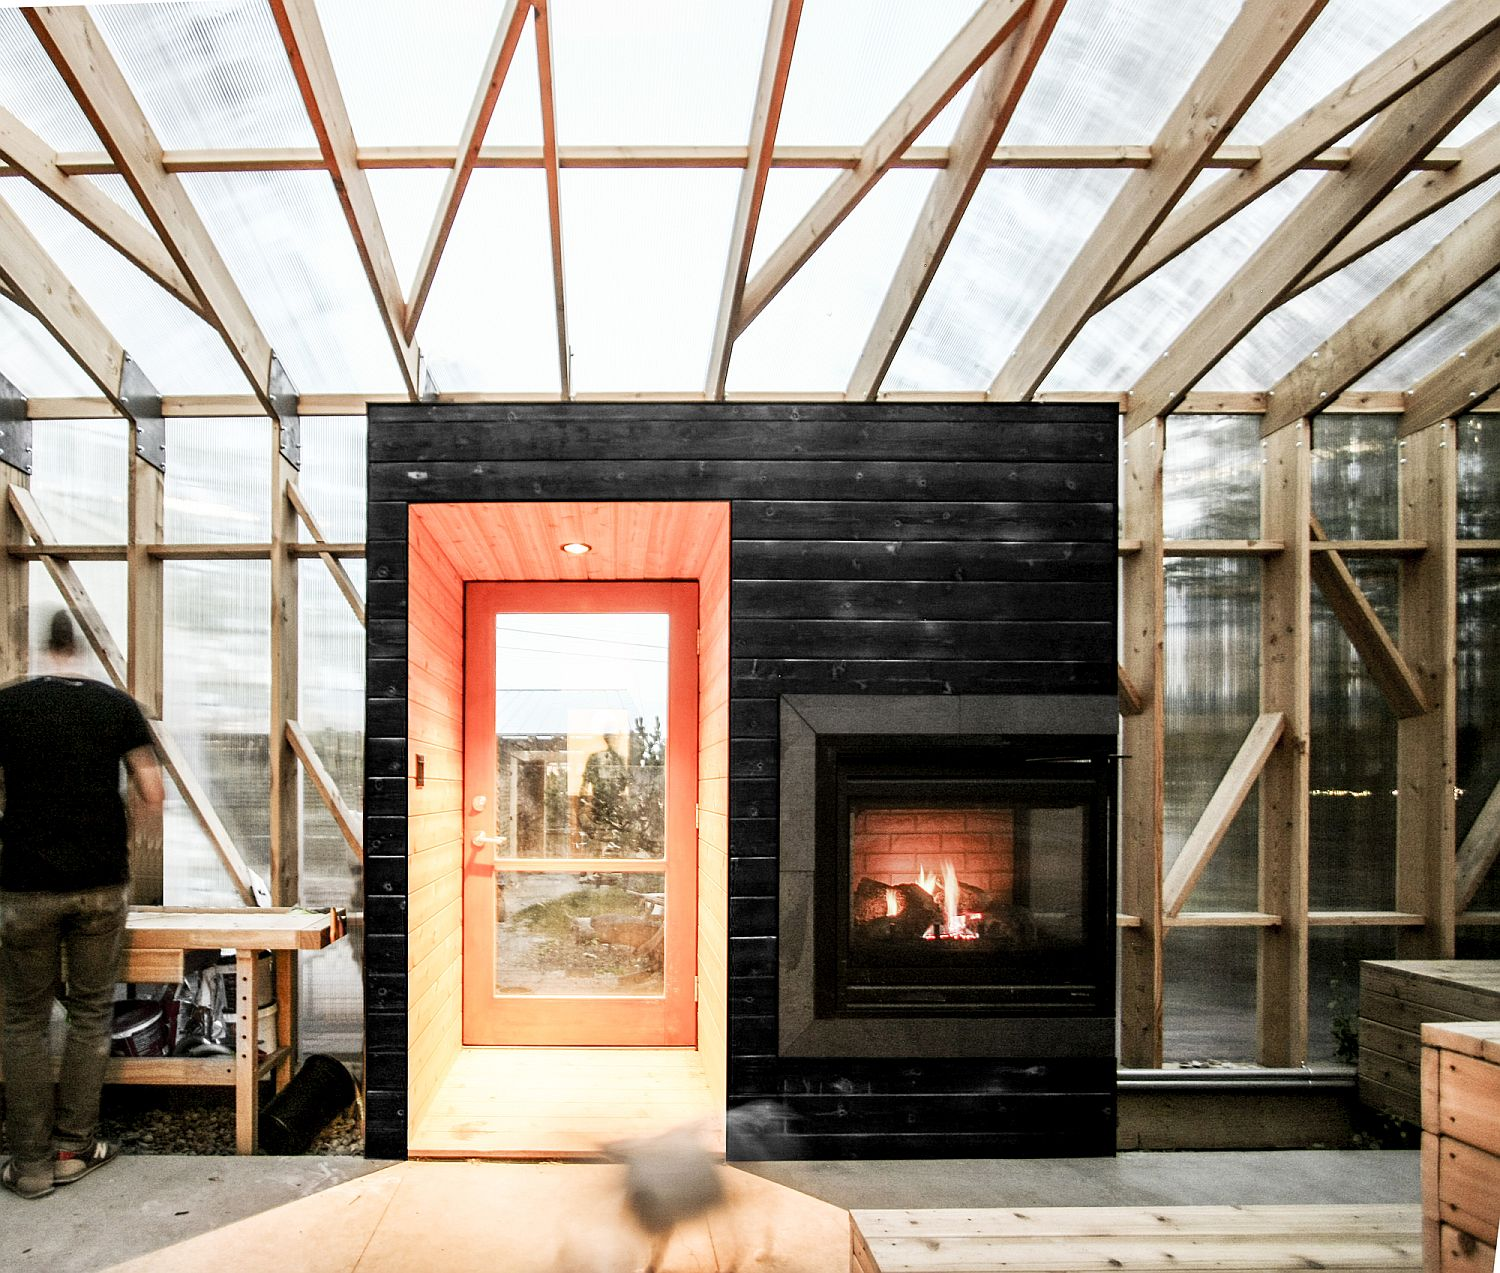 Fireplace at the entryway of the fabulous solarium gives the space a cozy appeal